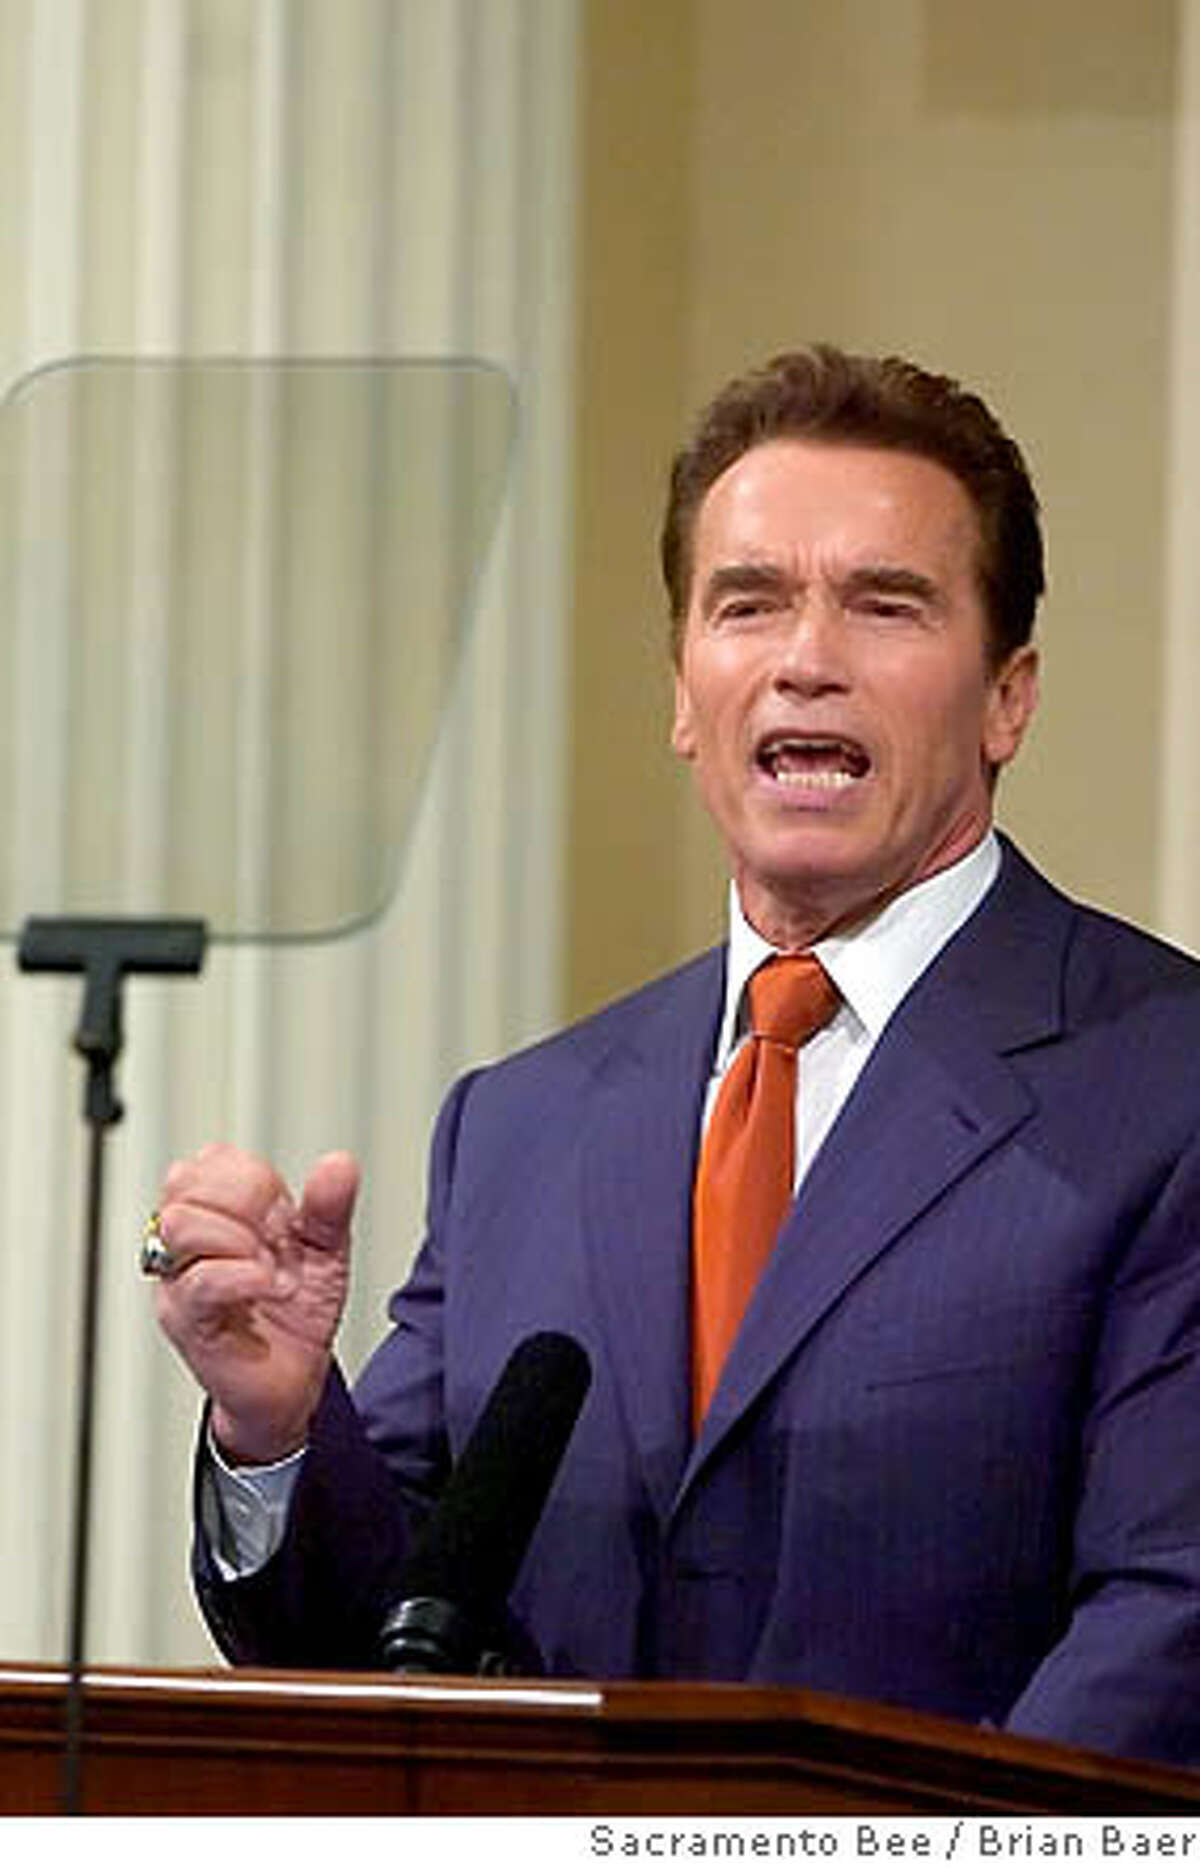 California Governor Arnold Schwarzenegger, address both legislative houses as he makes his State of the State address inside the Assembly chamber, Thursday Jan. 5, 2005. Sacramento Bee/ Brian Baer Ran on: 01-07-2006 The governor wants to issue $68 billion in state bonds during the next decade.